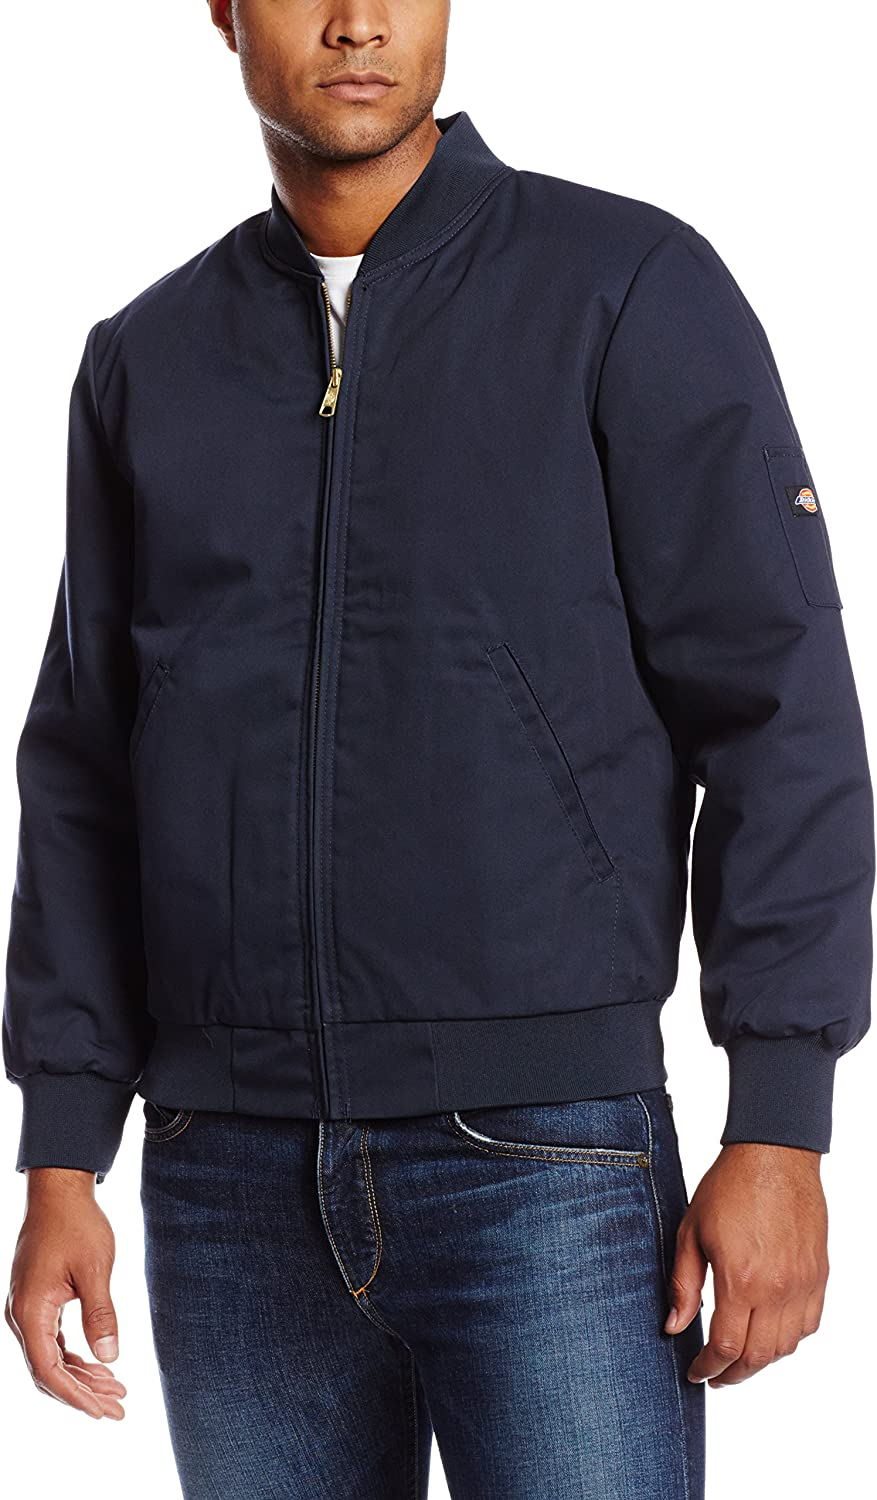 B000MW8QAW Dickies Occupational Workwear JTC2DN Polyester/ Cotton Insulated Team Jacket with Slash Front Pockets, Dark Navy 91wFm17h-PL